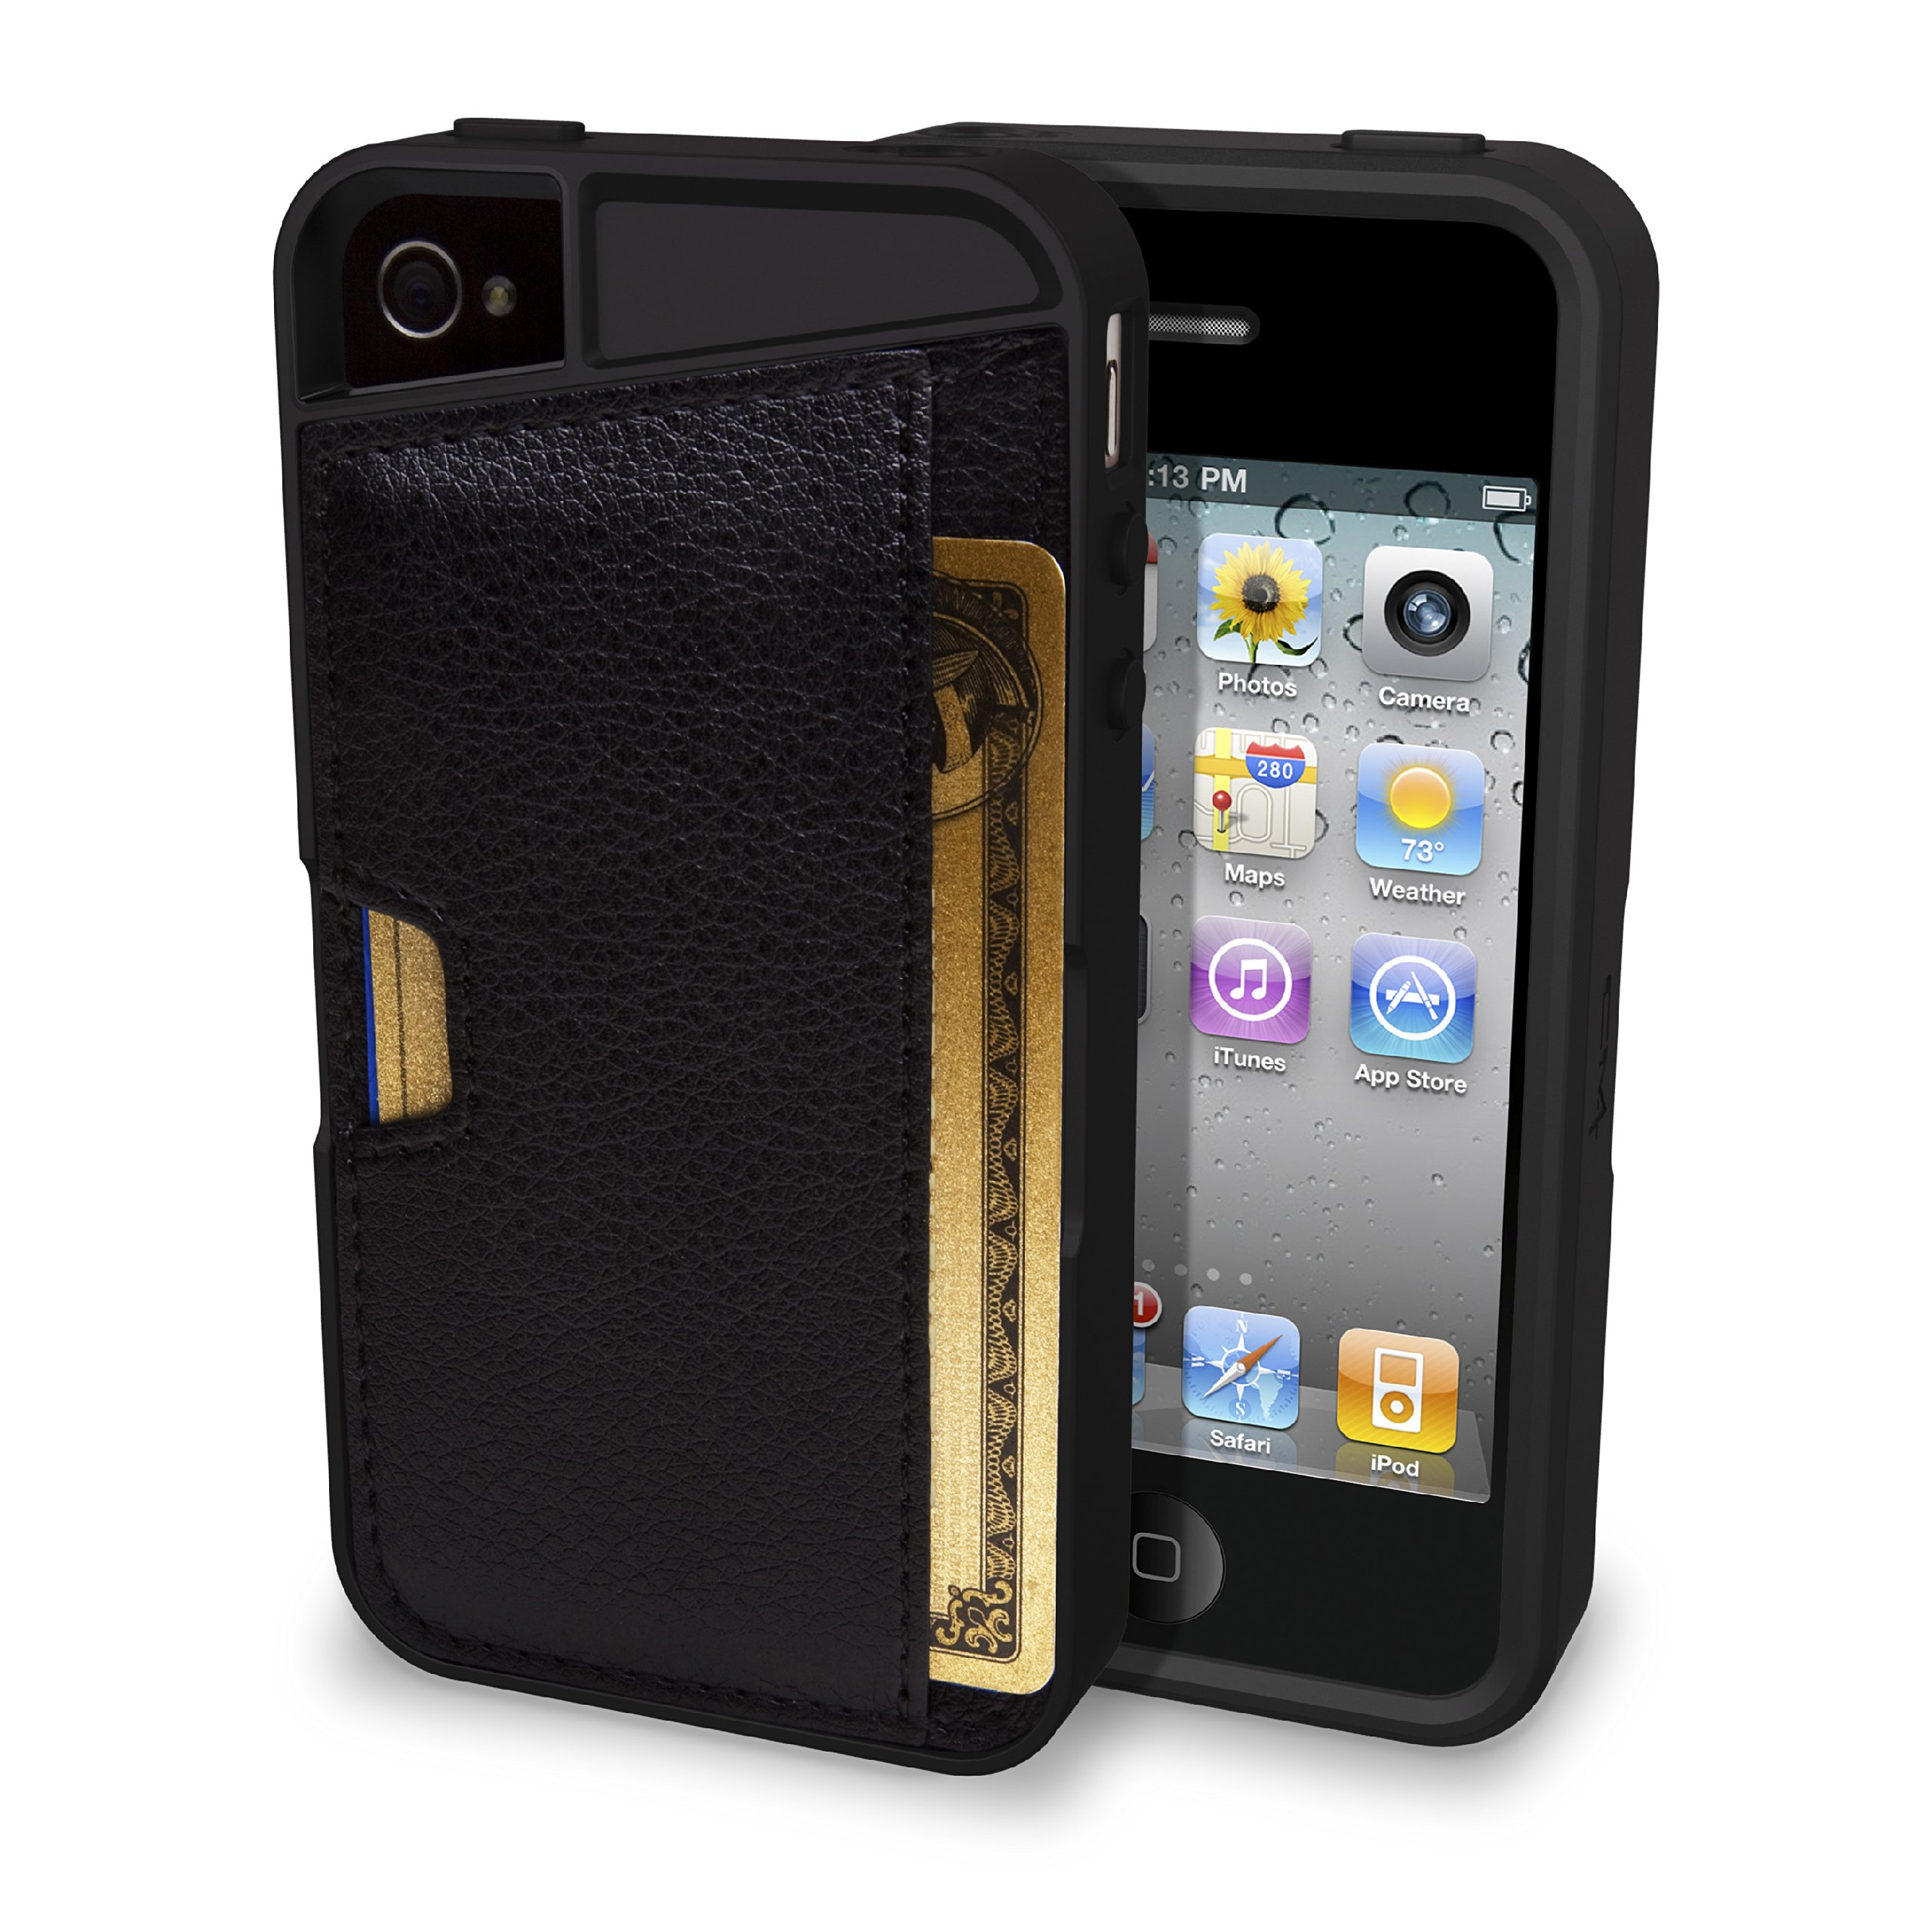 Silk iPhone 4/4S Wallet Case - Q CARD CASE [Slim Protective CM4 Cover] - Black Onyx